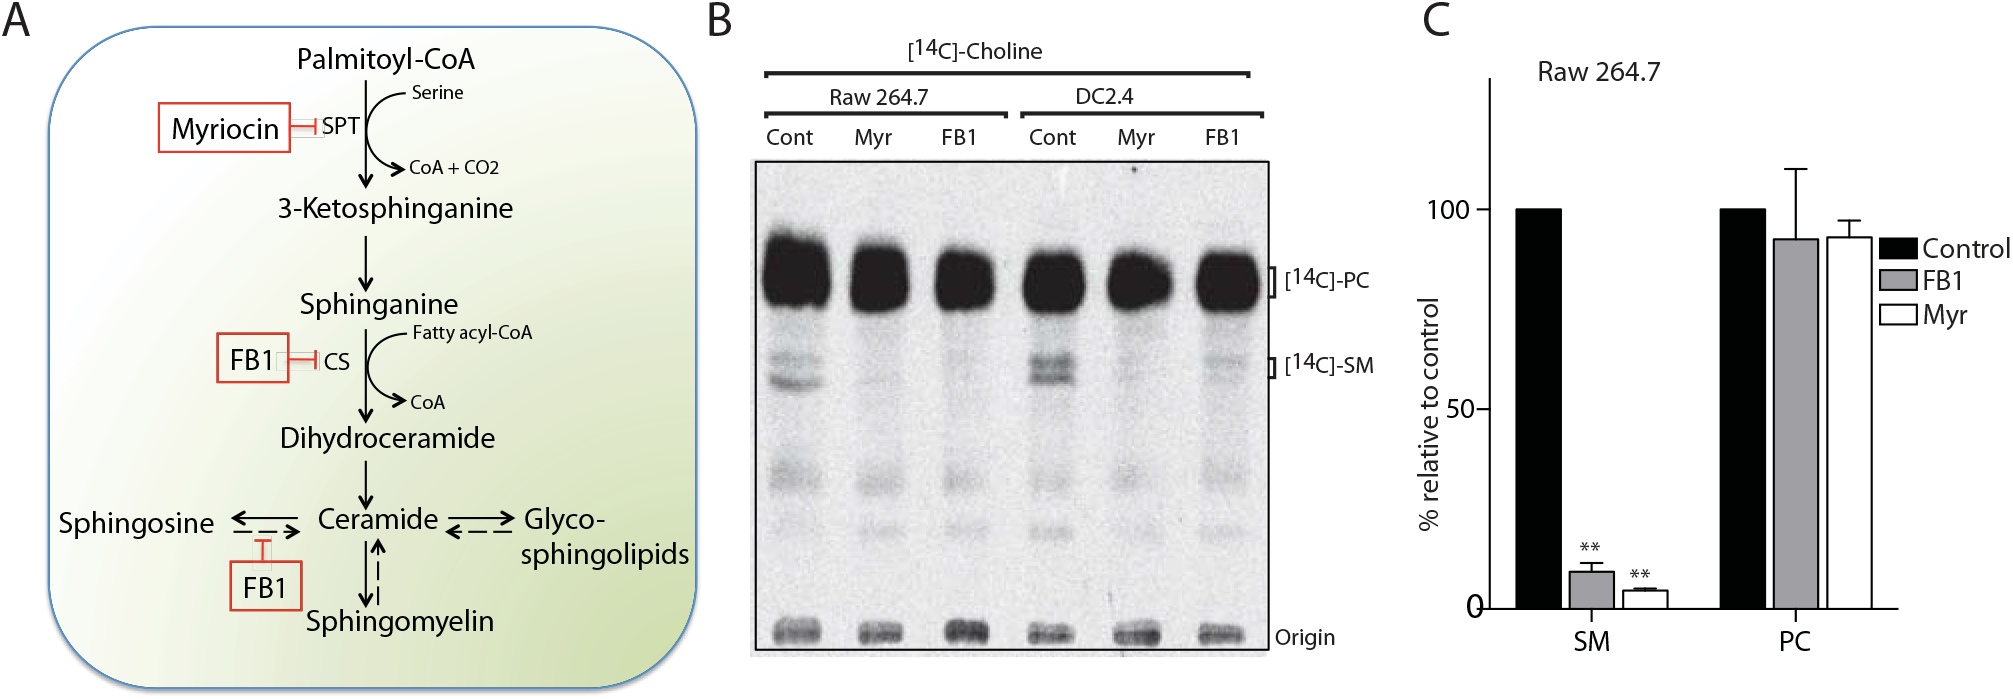 Myriocin and Fumonisin B1 block sphingolipid biosynthesis in RAW macrophages and dendritic cell lines.